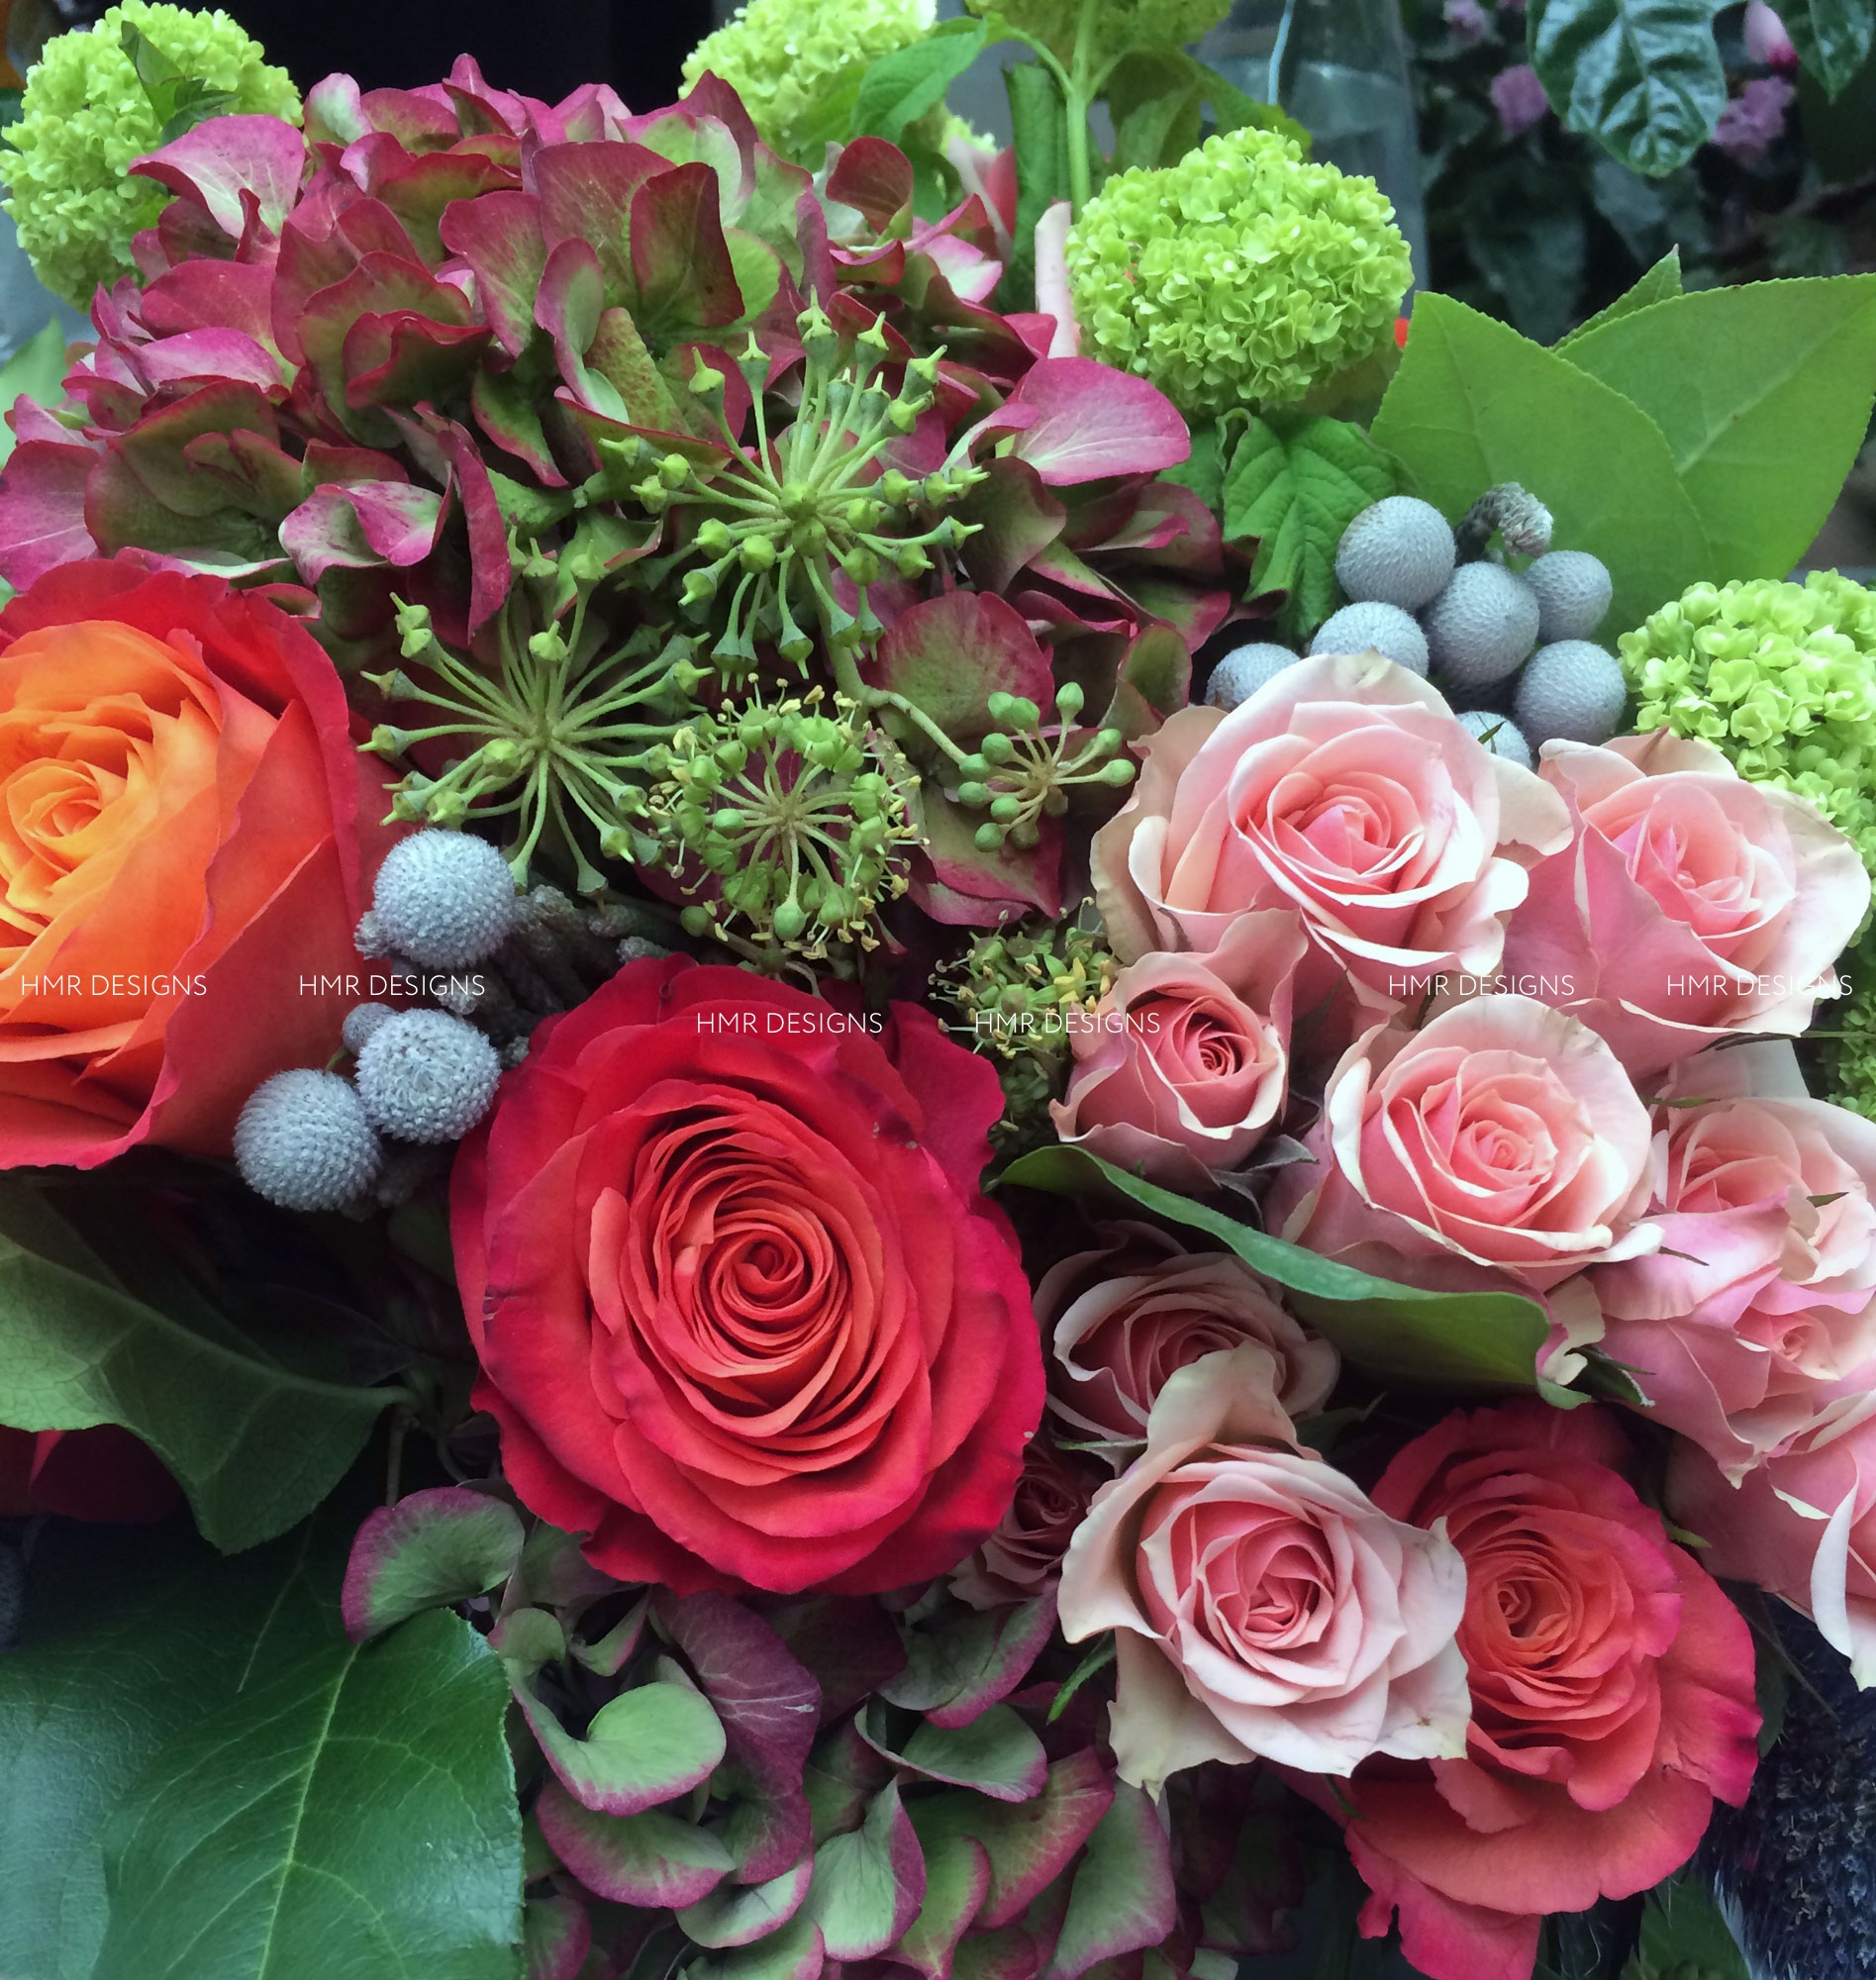 Gorgeous floral for delivery in Chicago by HMR Designs